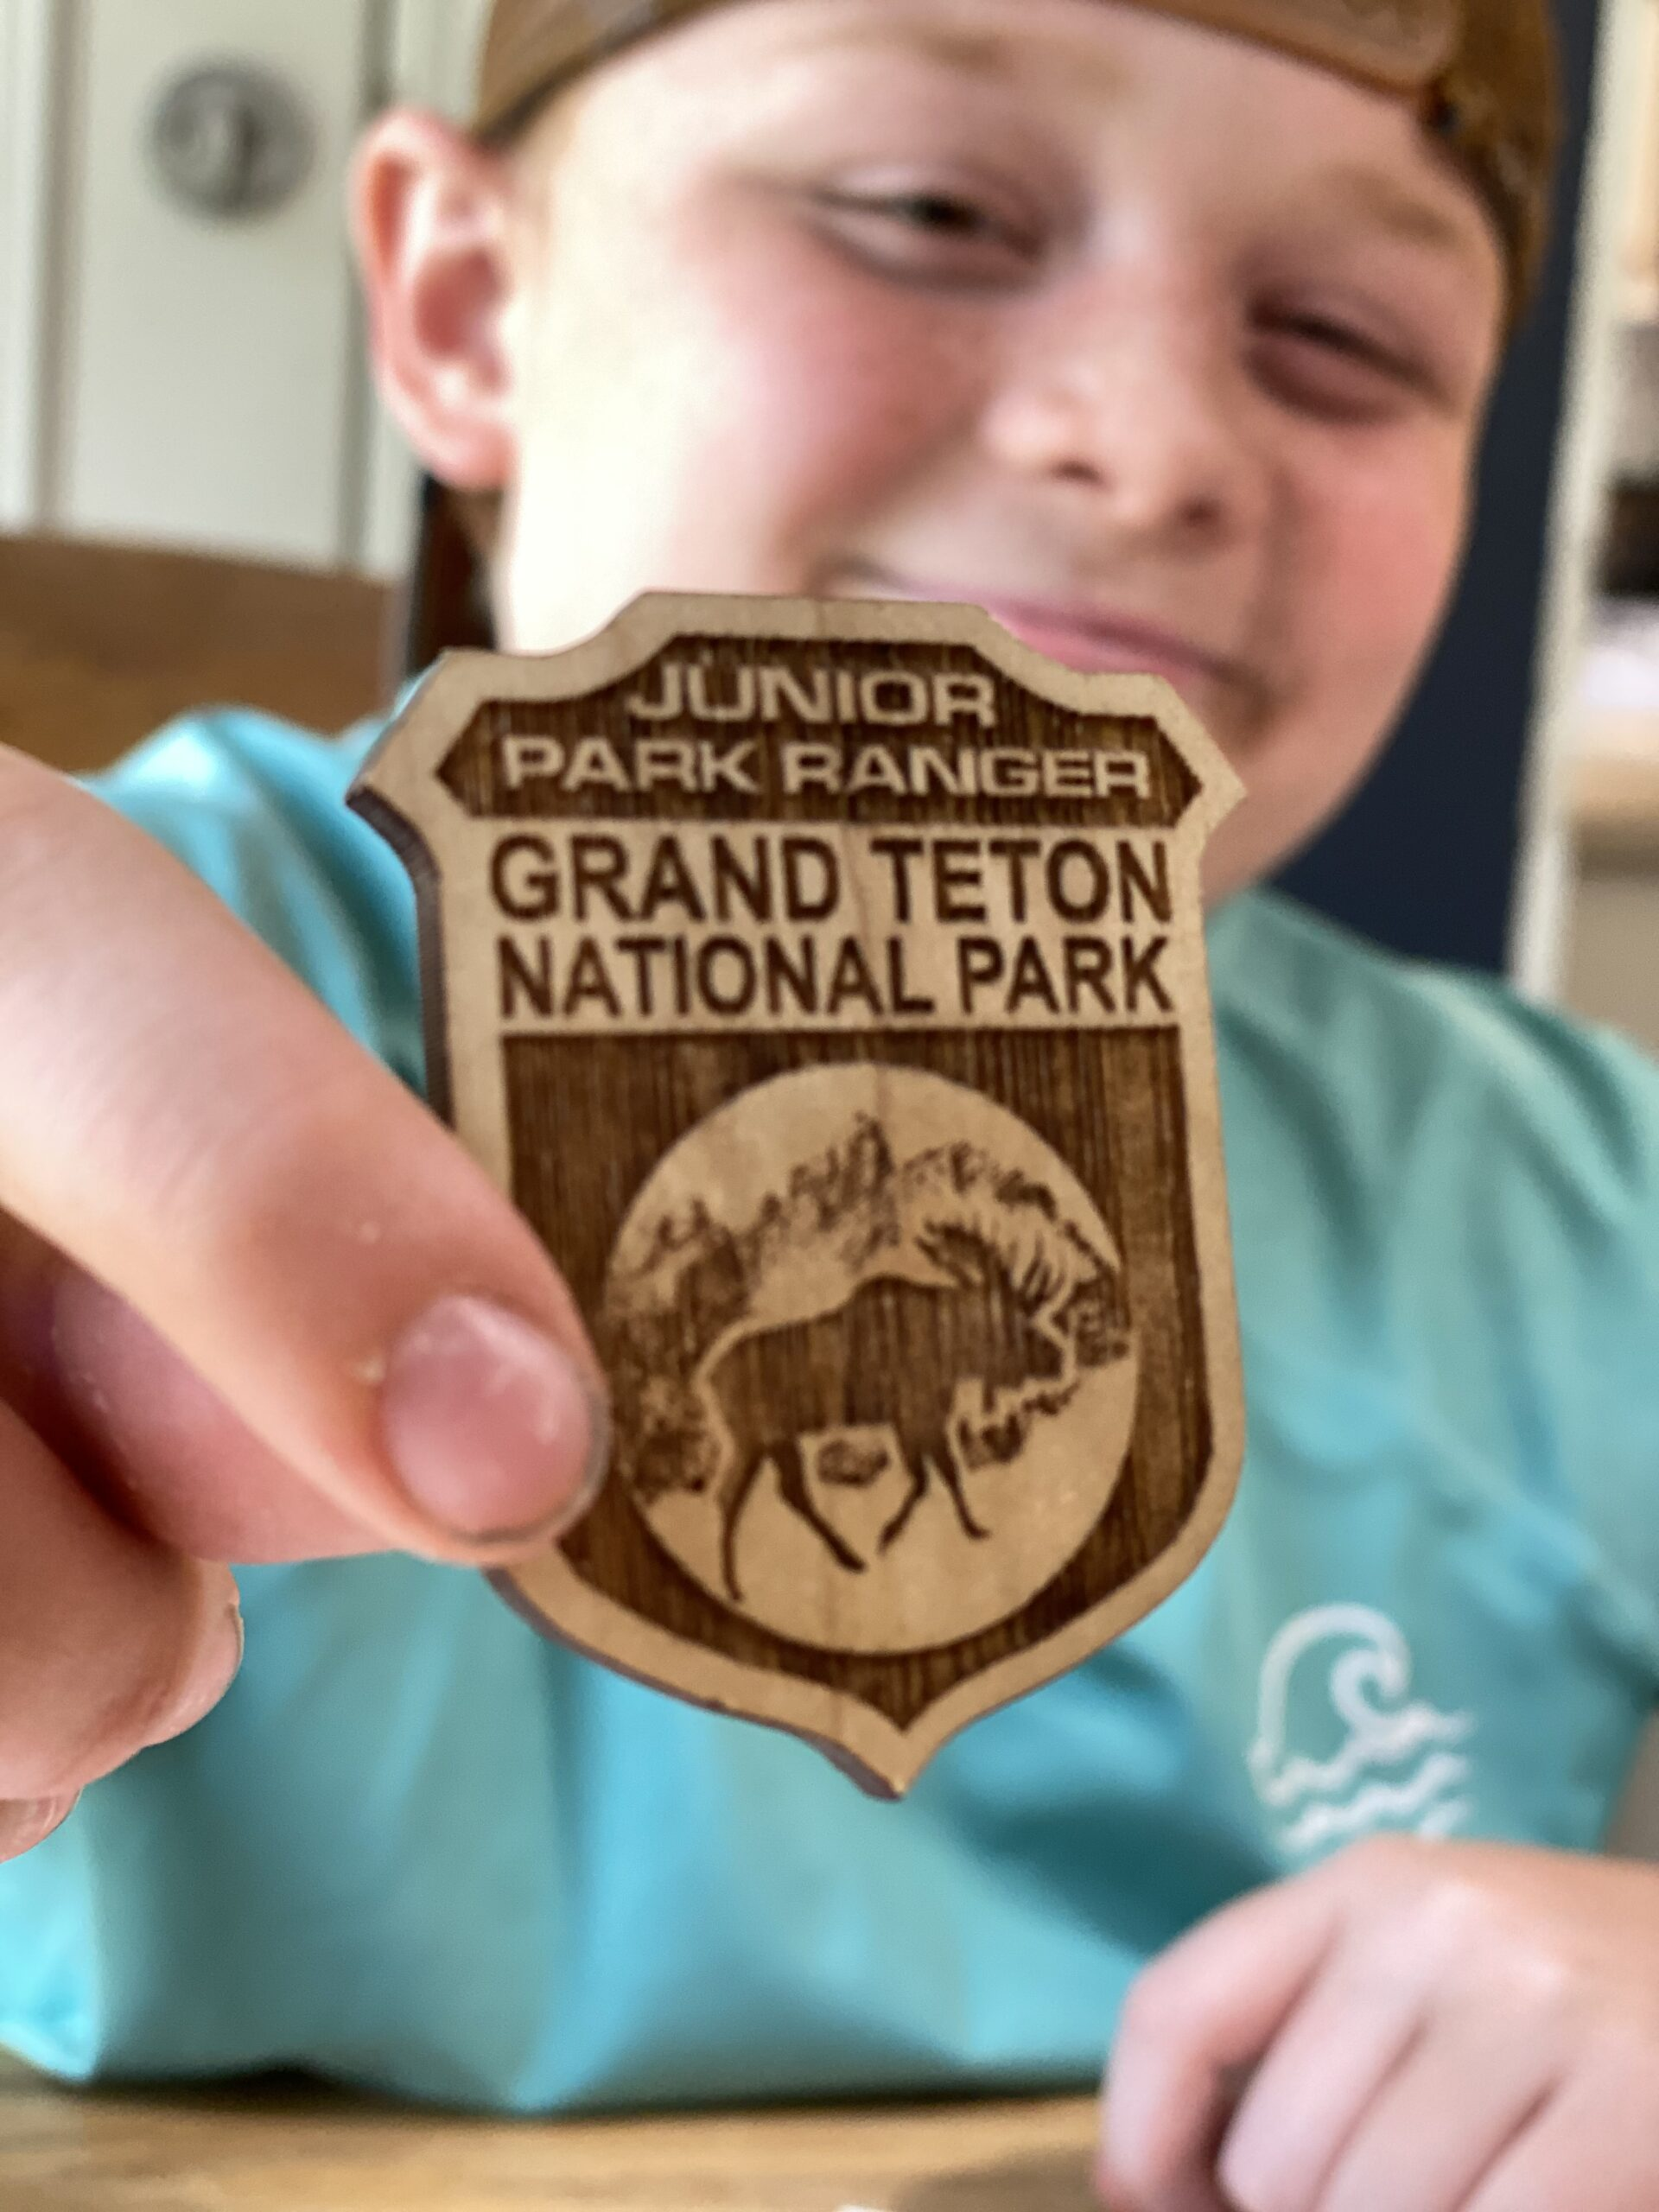 8154: Visiting National and State Parks and the Junior Ranger Programs